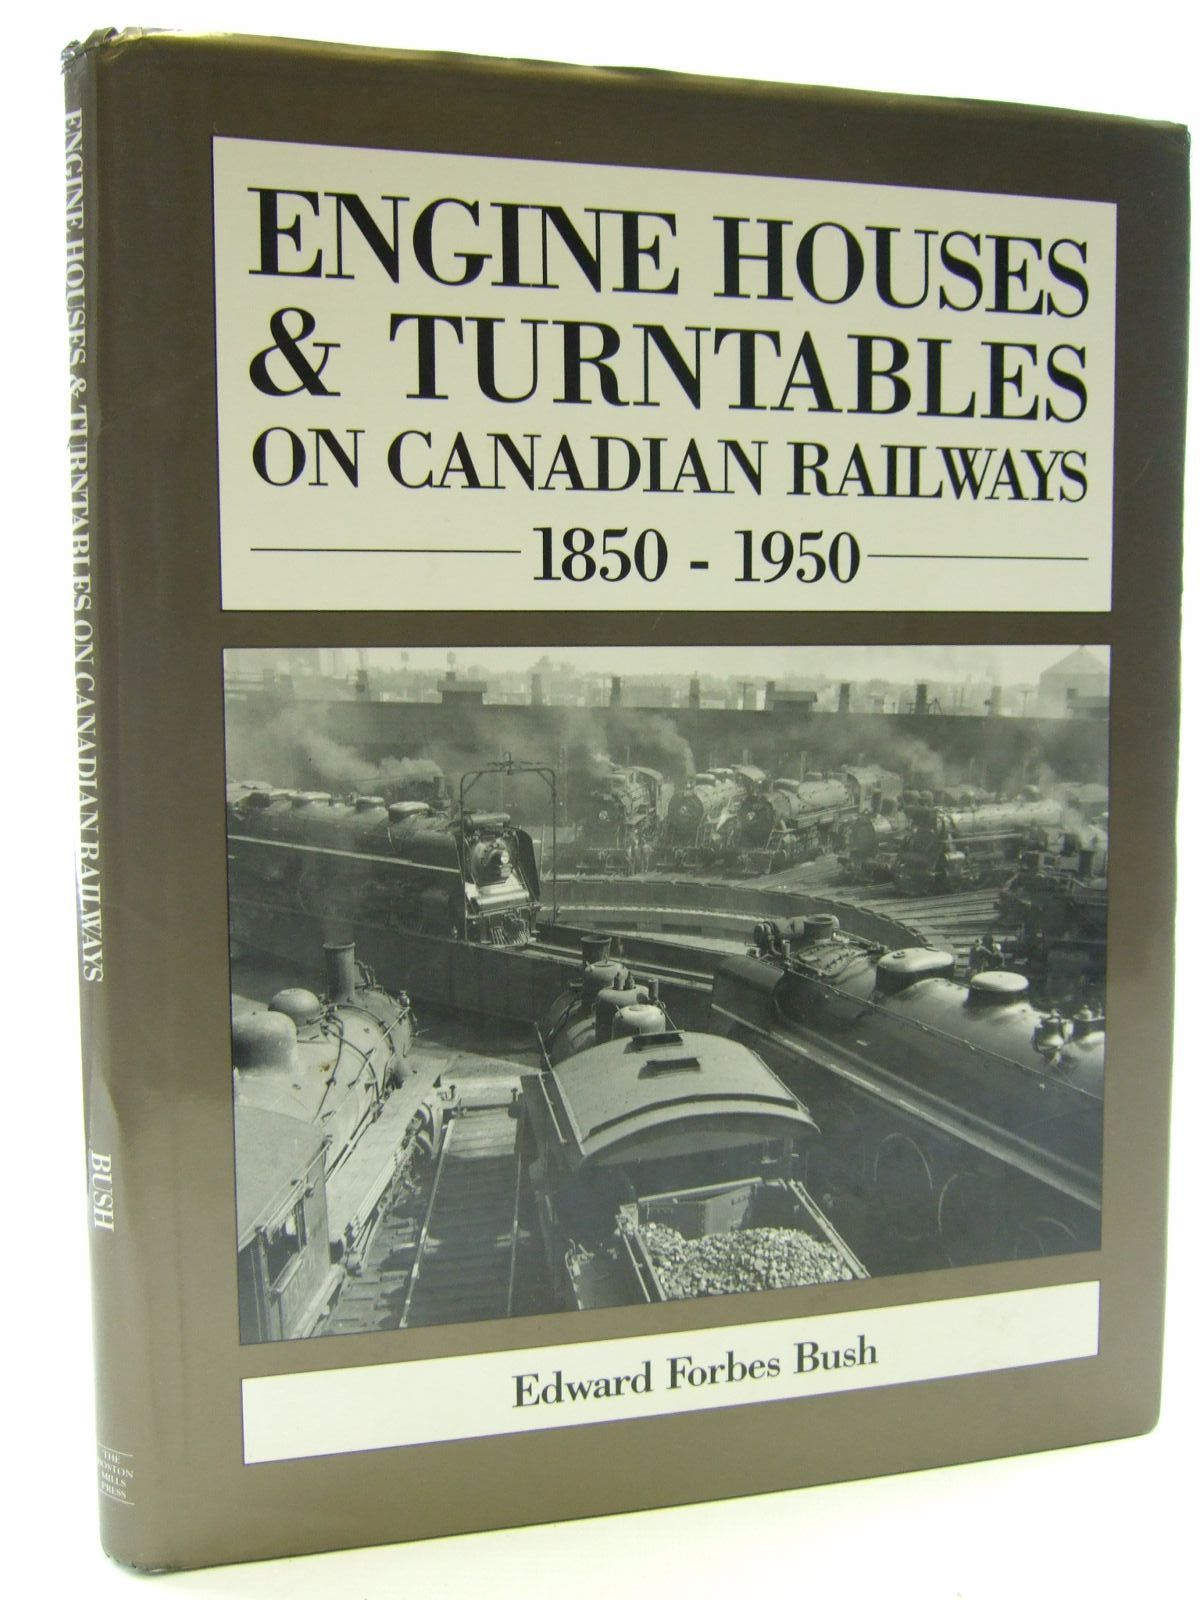 Photo of ENGINE HOUSES & TURNTABLES ON CANADIAN RAILWAYS 1850-1950 written by Bush, Edward Forbes published by The Boston Mills Press (STOCK CODE: 1806281)  for sale by Stella & Rose's Books